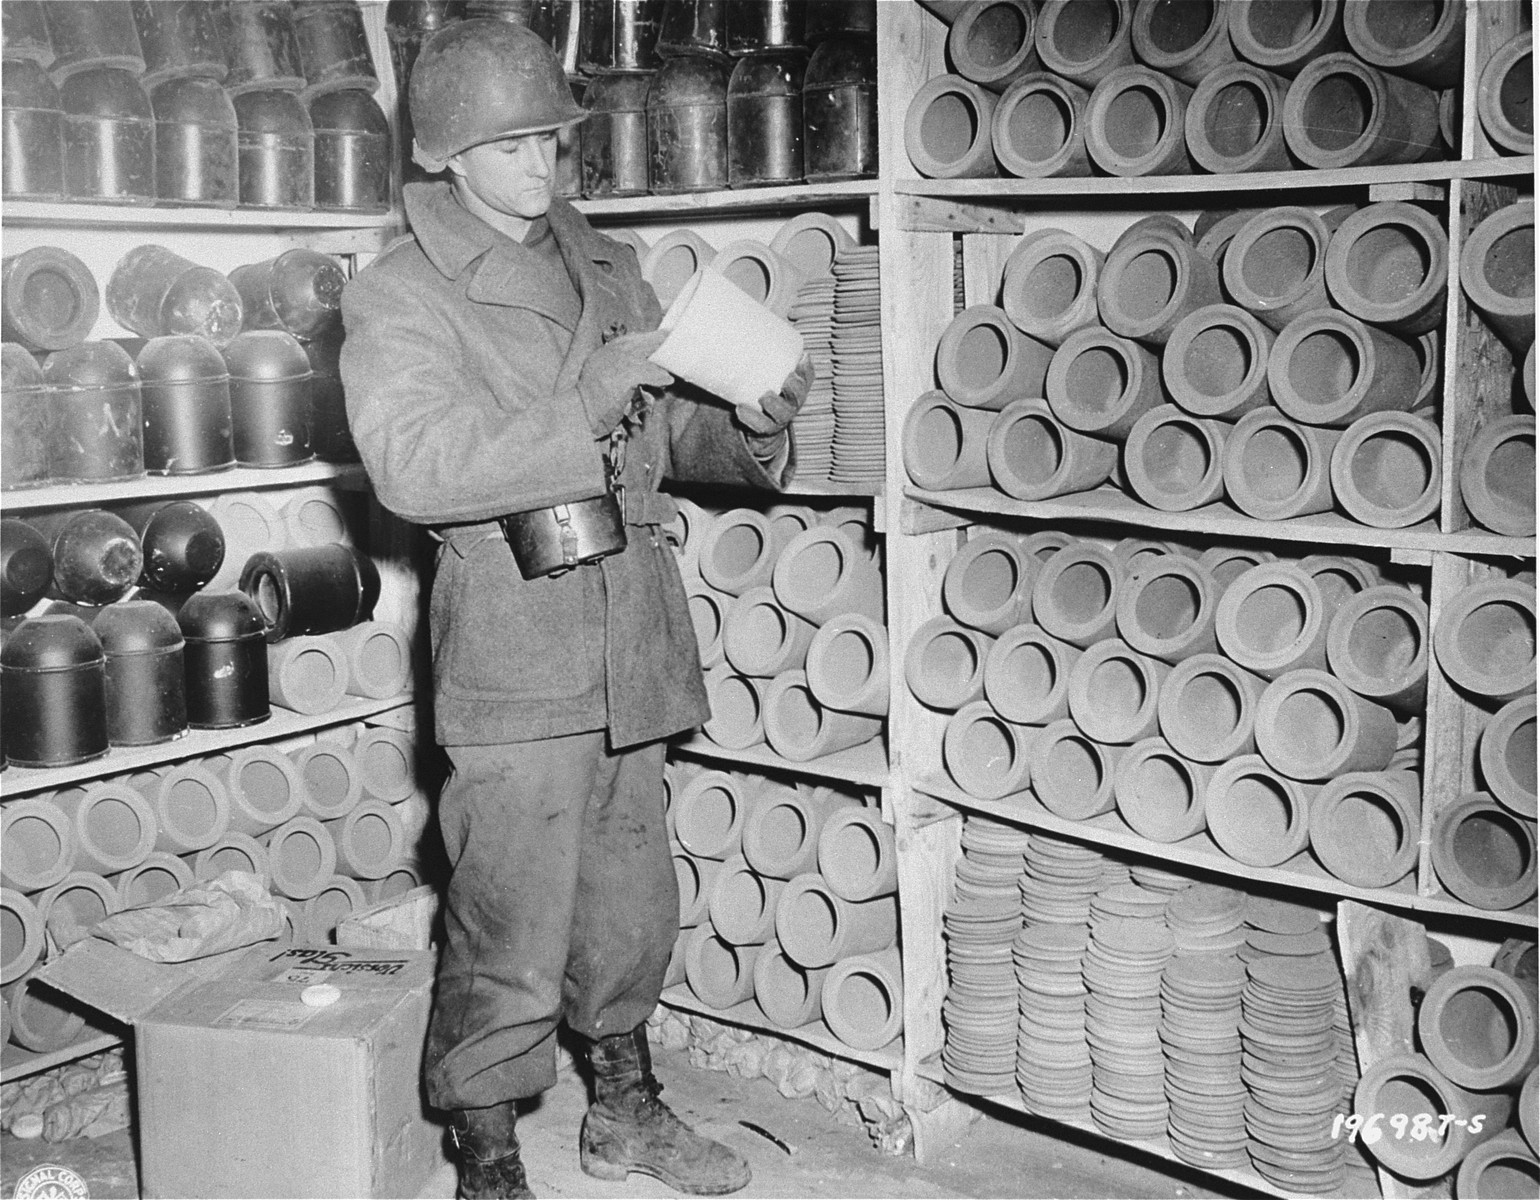 An American soldier in Natzweiler-Struthof examines an urn used to bury the ashes of cremated prisoners.